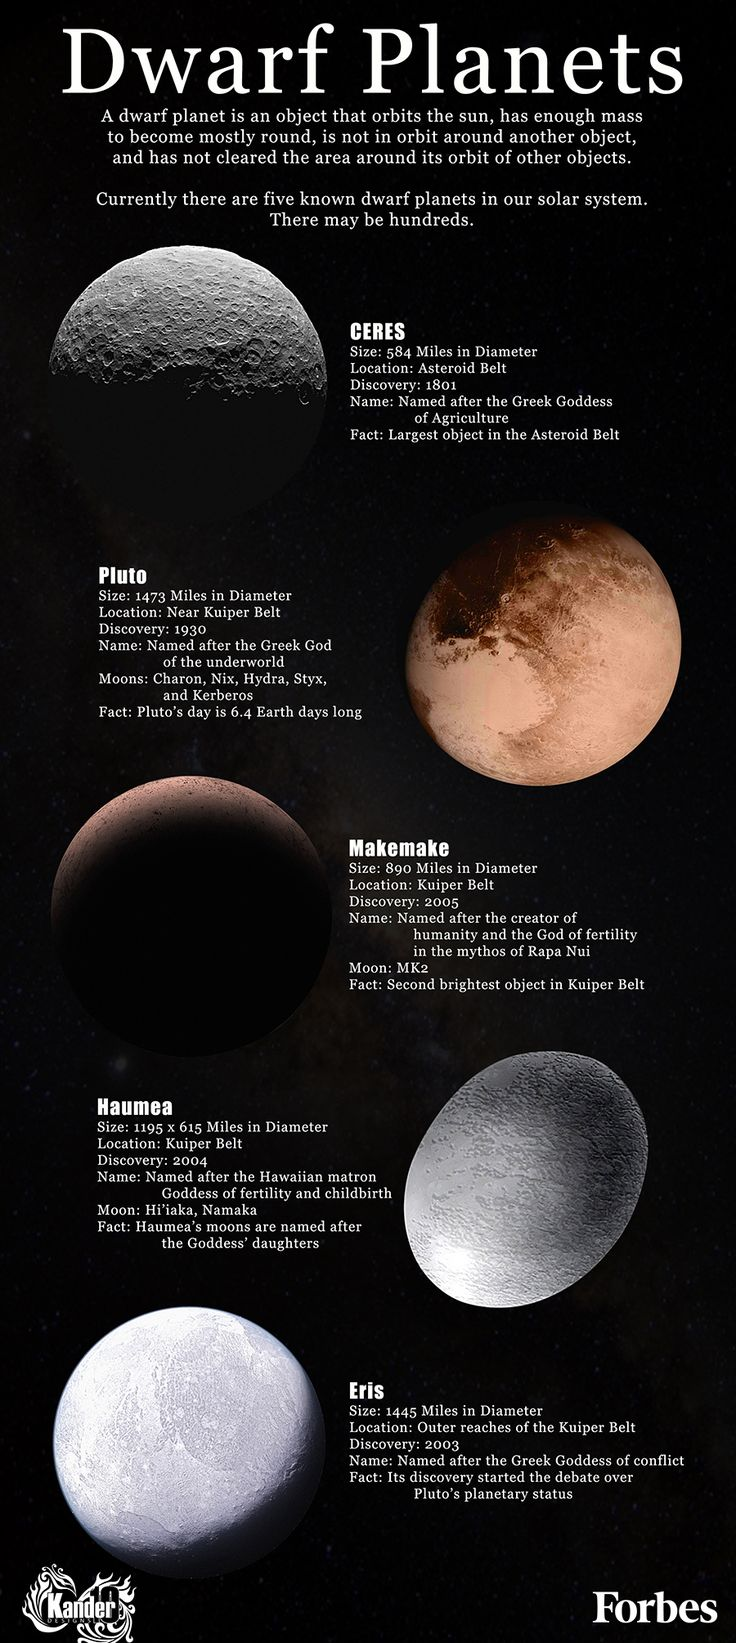 Pluto Has A Heart Love Him Back: Facts On The Five Known Dwarf Planets [Infographic